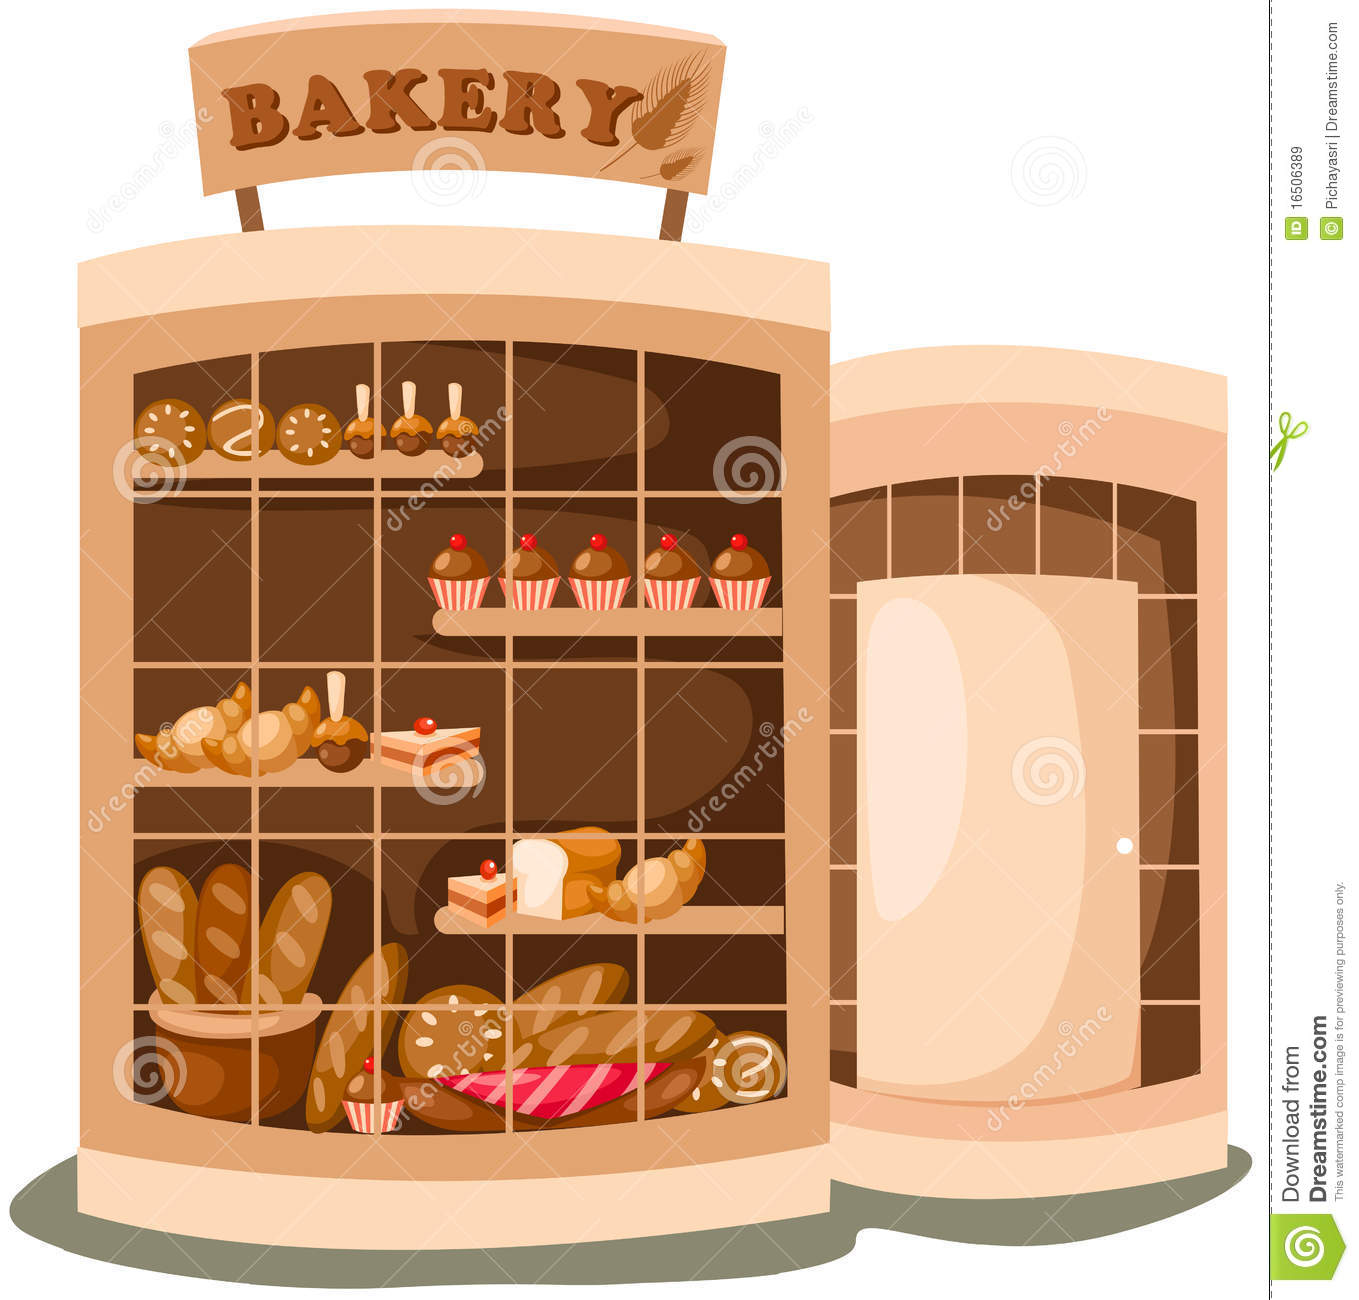 Wallpapers background. Bakery clipart wallpaper